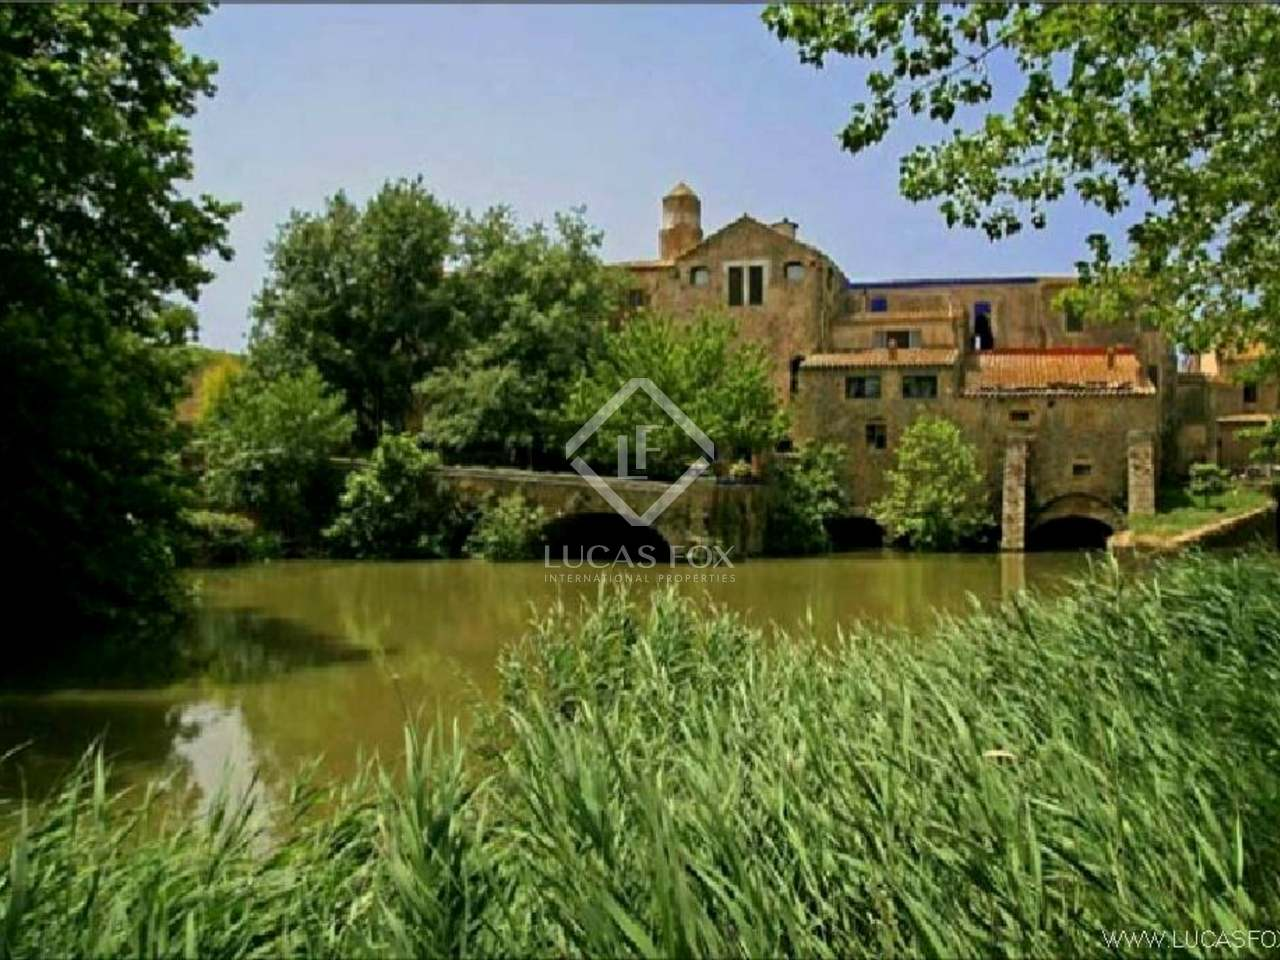 Unique riverside country property for sale comprising various different residences in a superb location close to the beaches of the Costa Brava - ideal potential hotel business